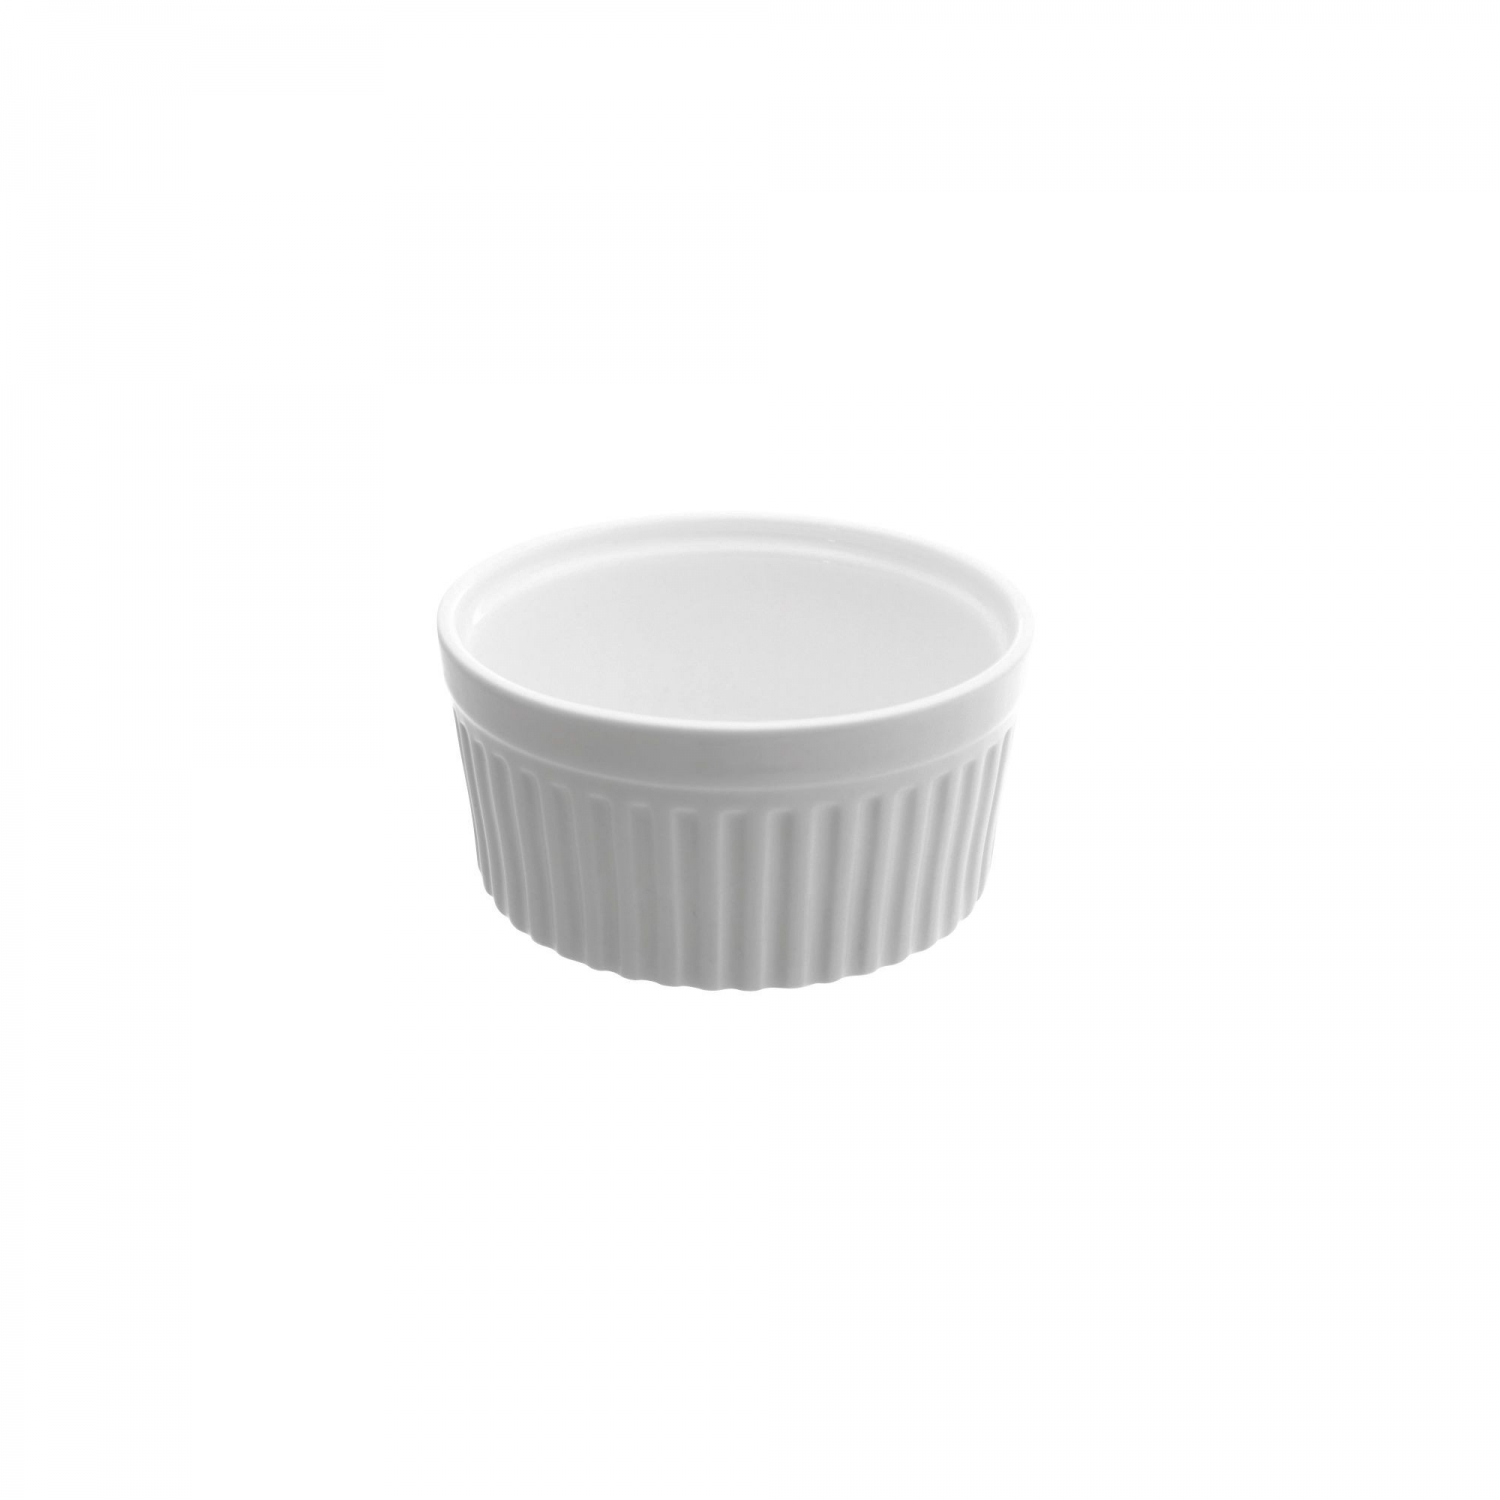 10 Strawberry Street WTR-38SUF Whittier Ramekin 6 oz.